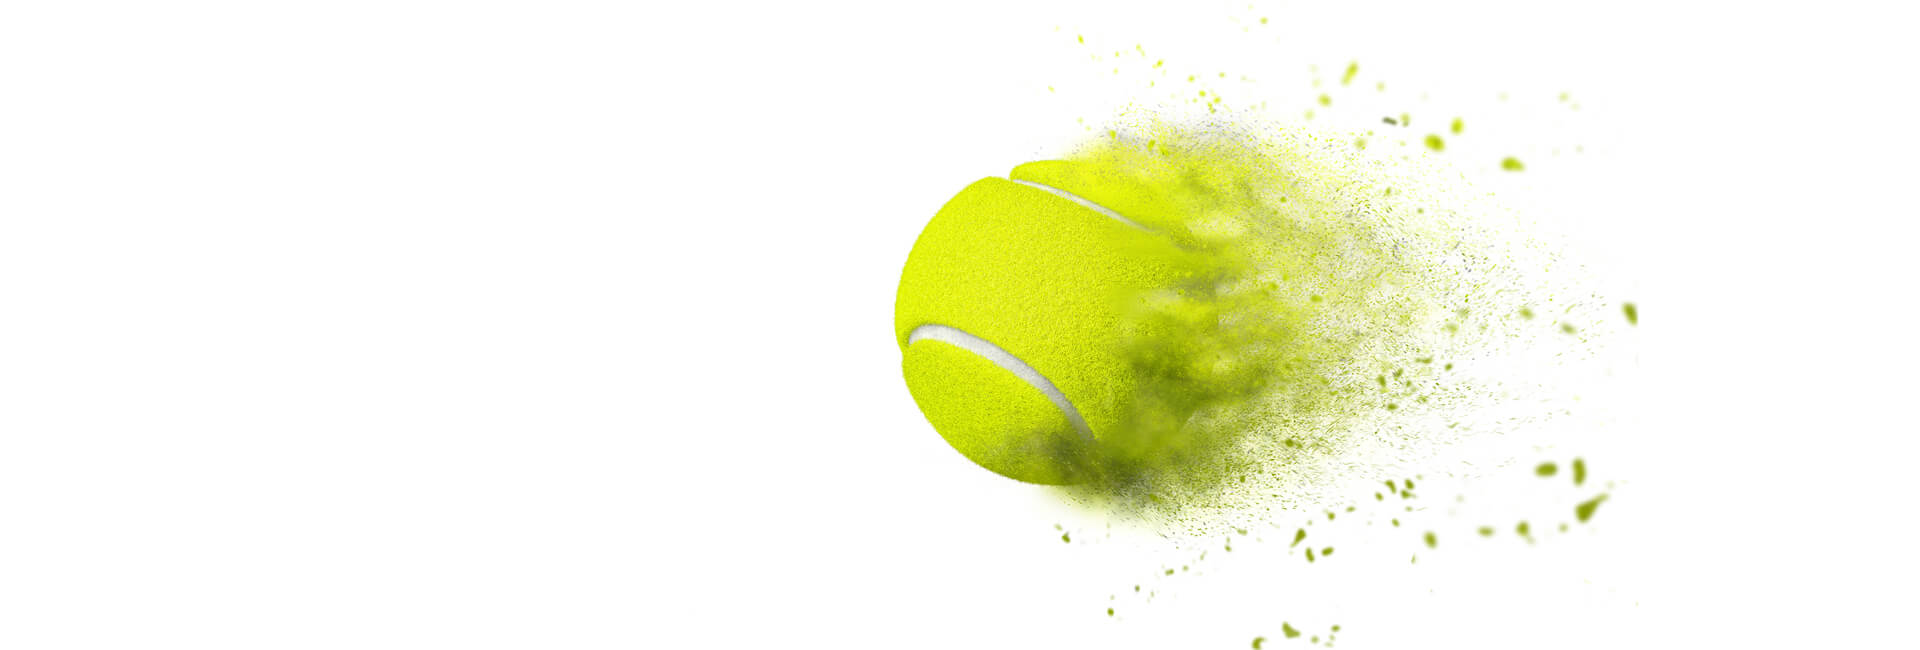 How To Make Money Betting On Tennis